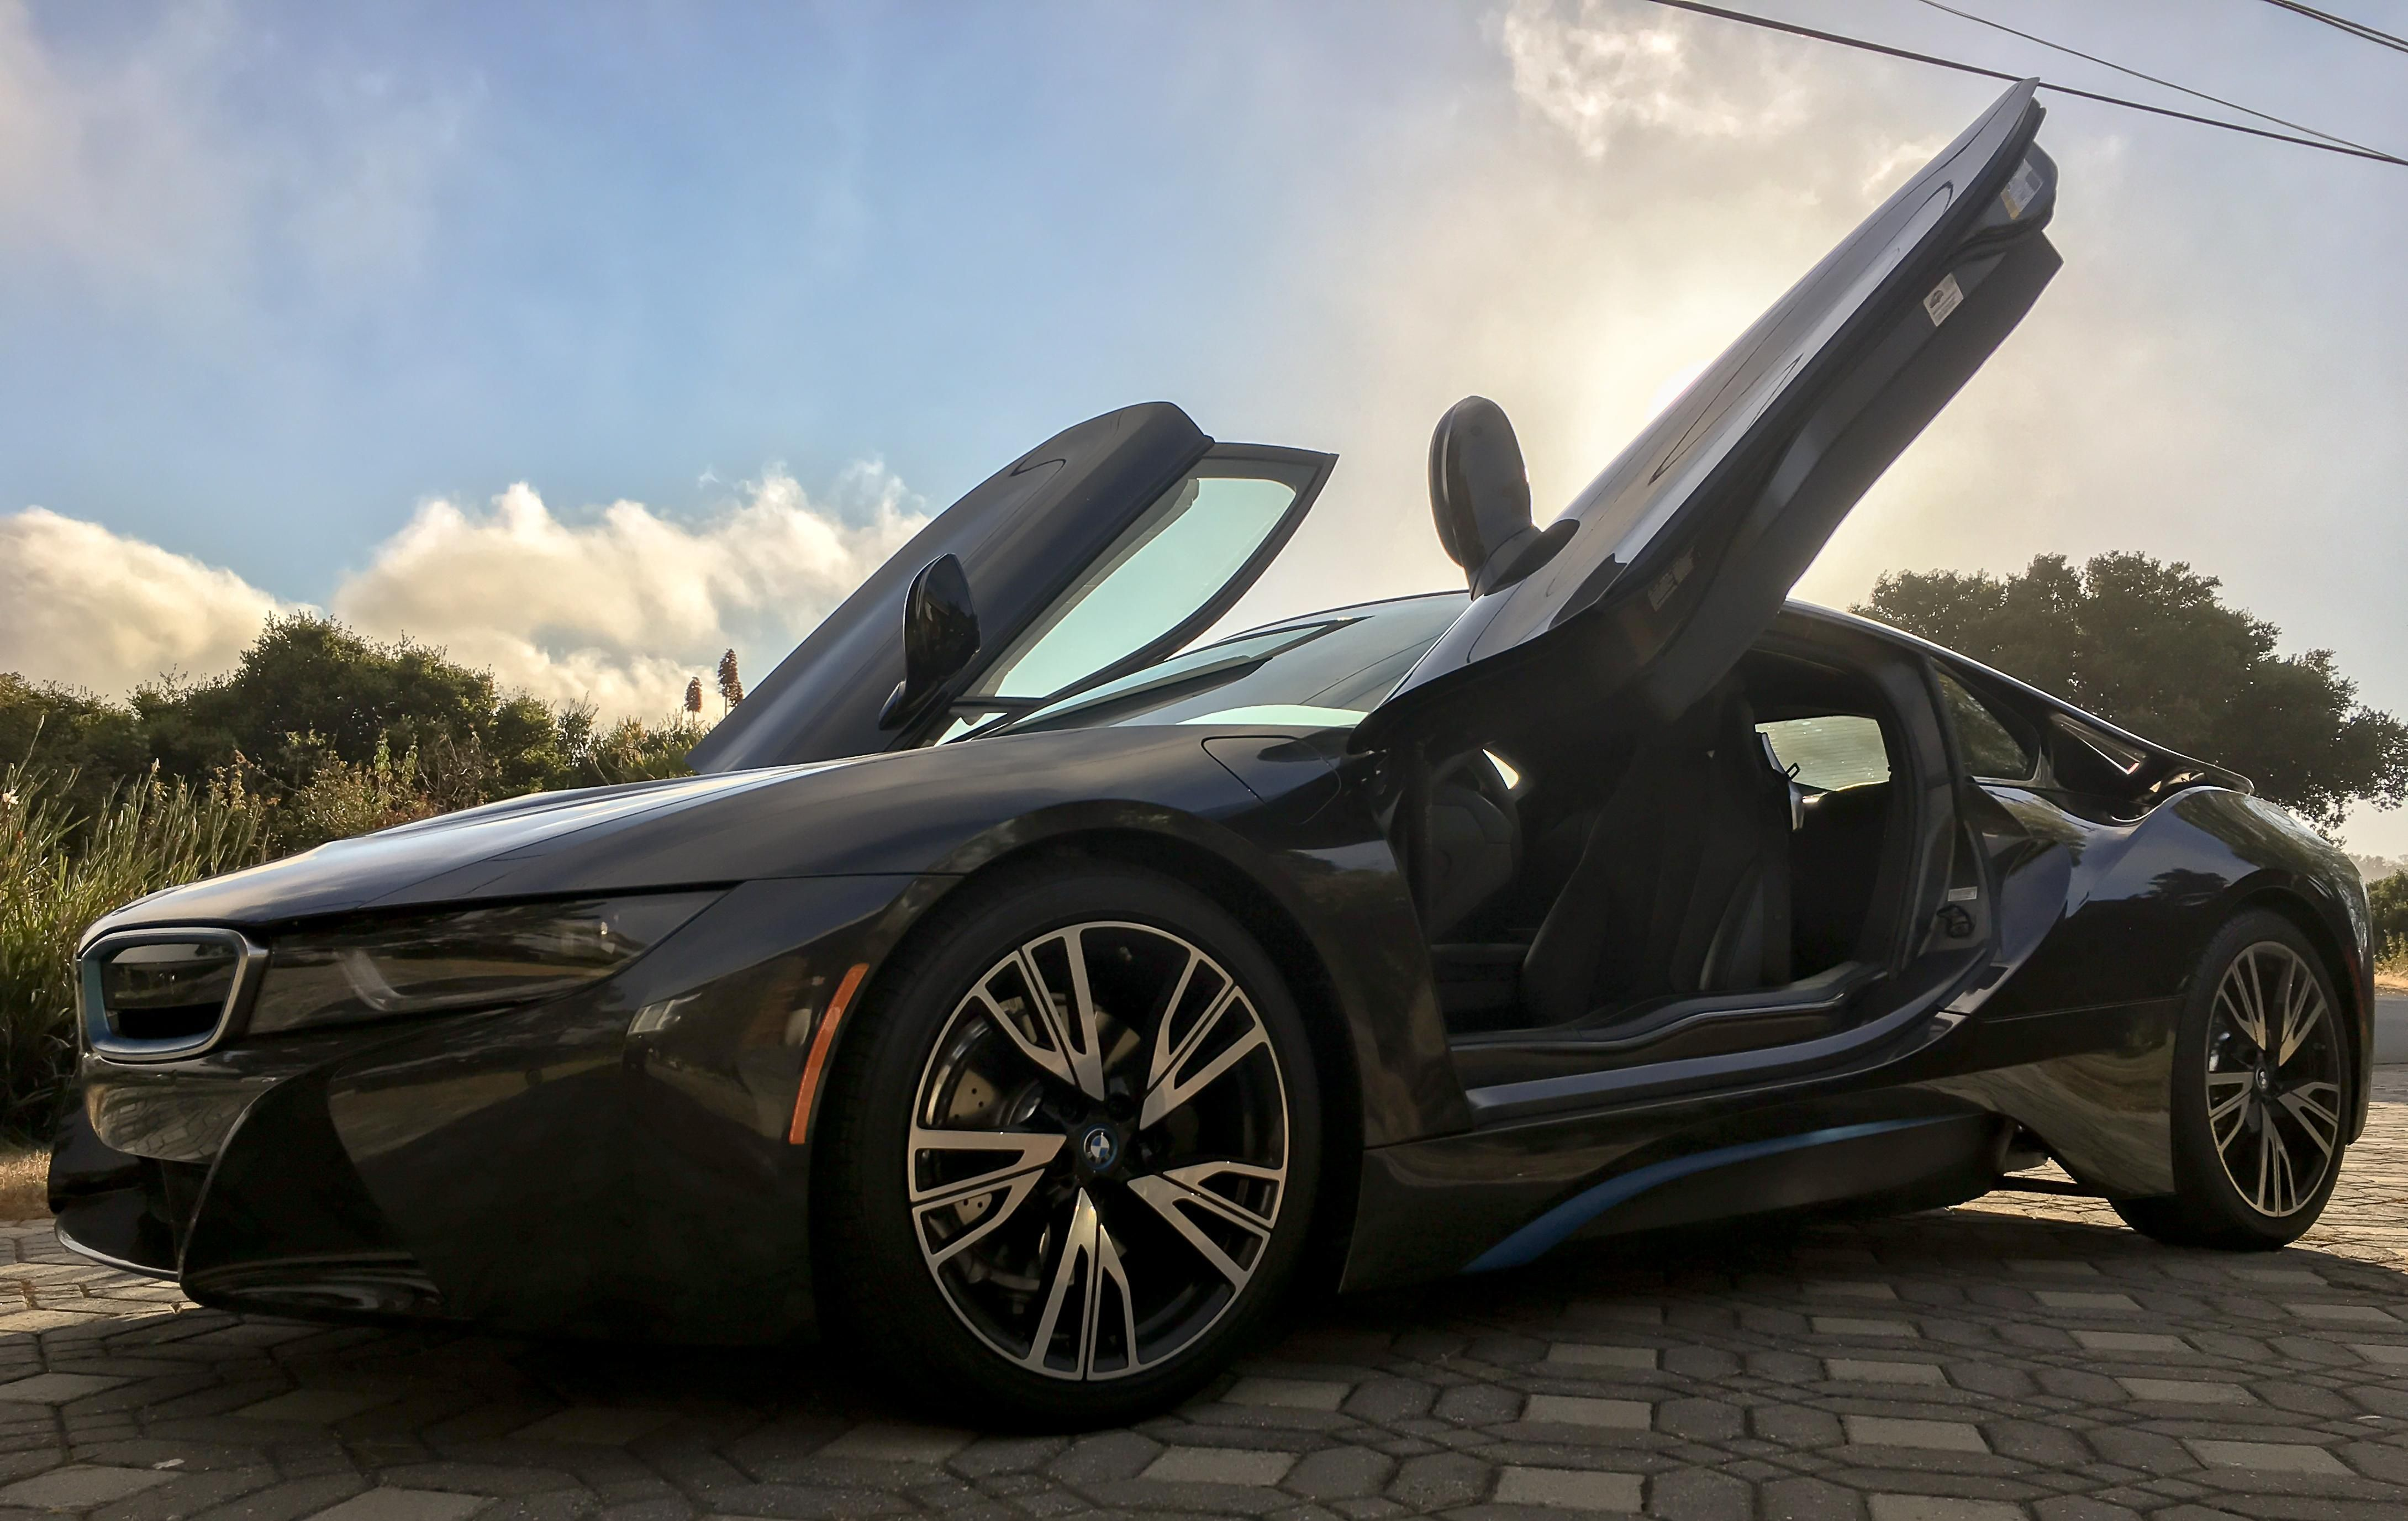 My 2016 BMW i8 [4359 2753][OC] see for